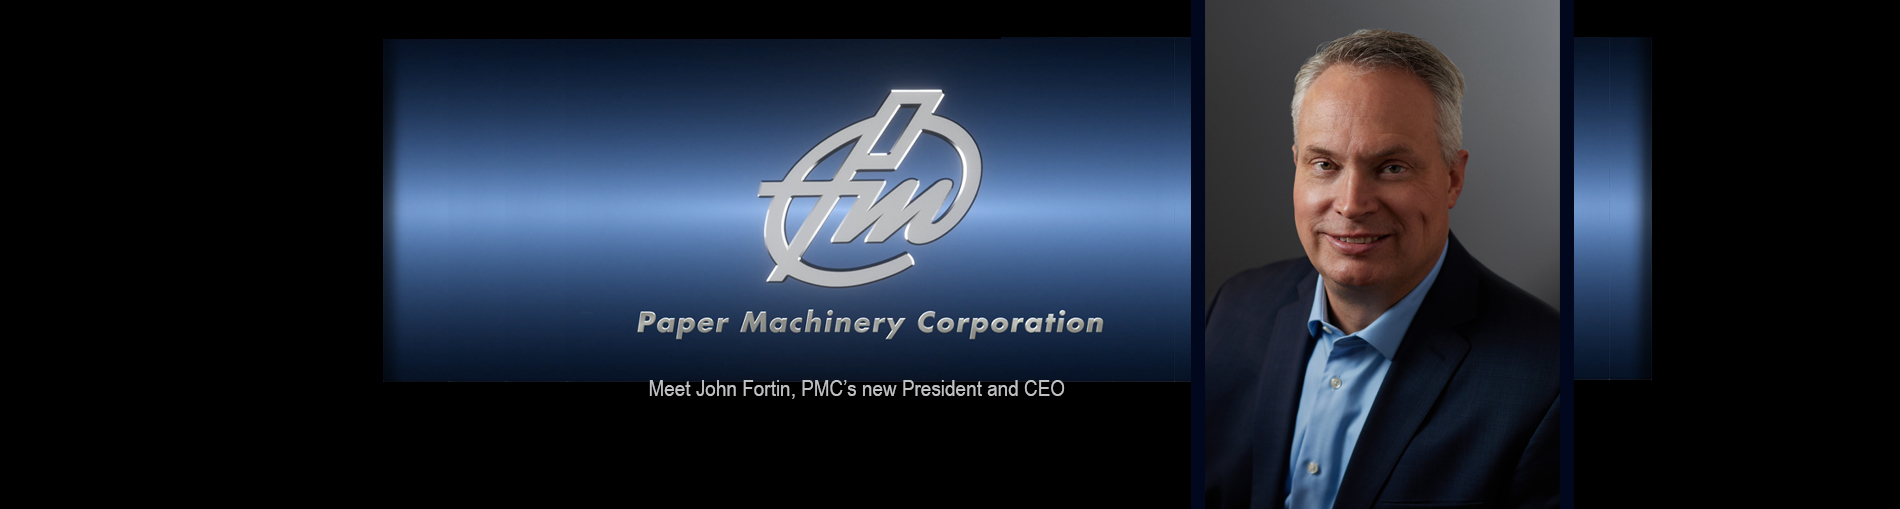 PMC's Board of Directors has appointed John Fortin as the new President and Chief Executive Officer